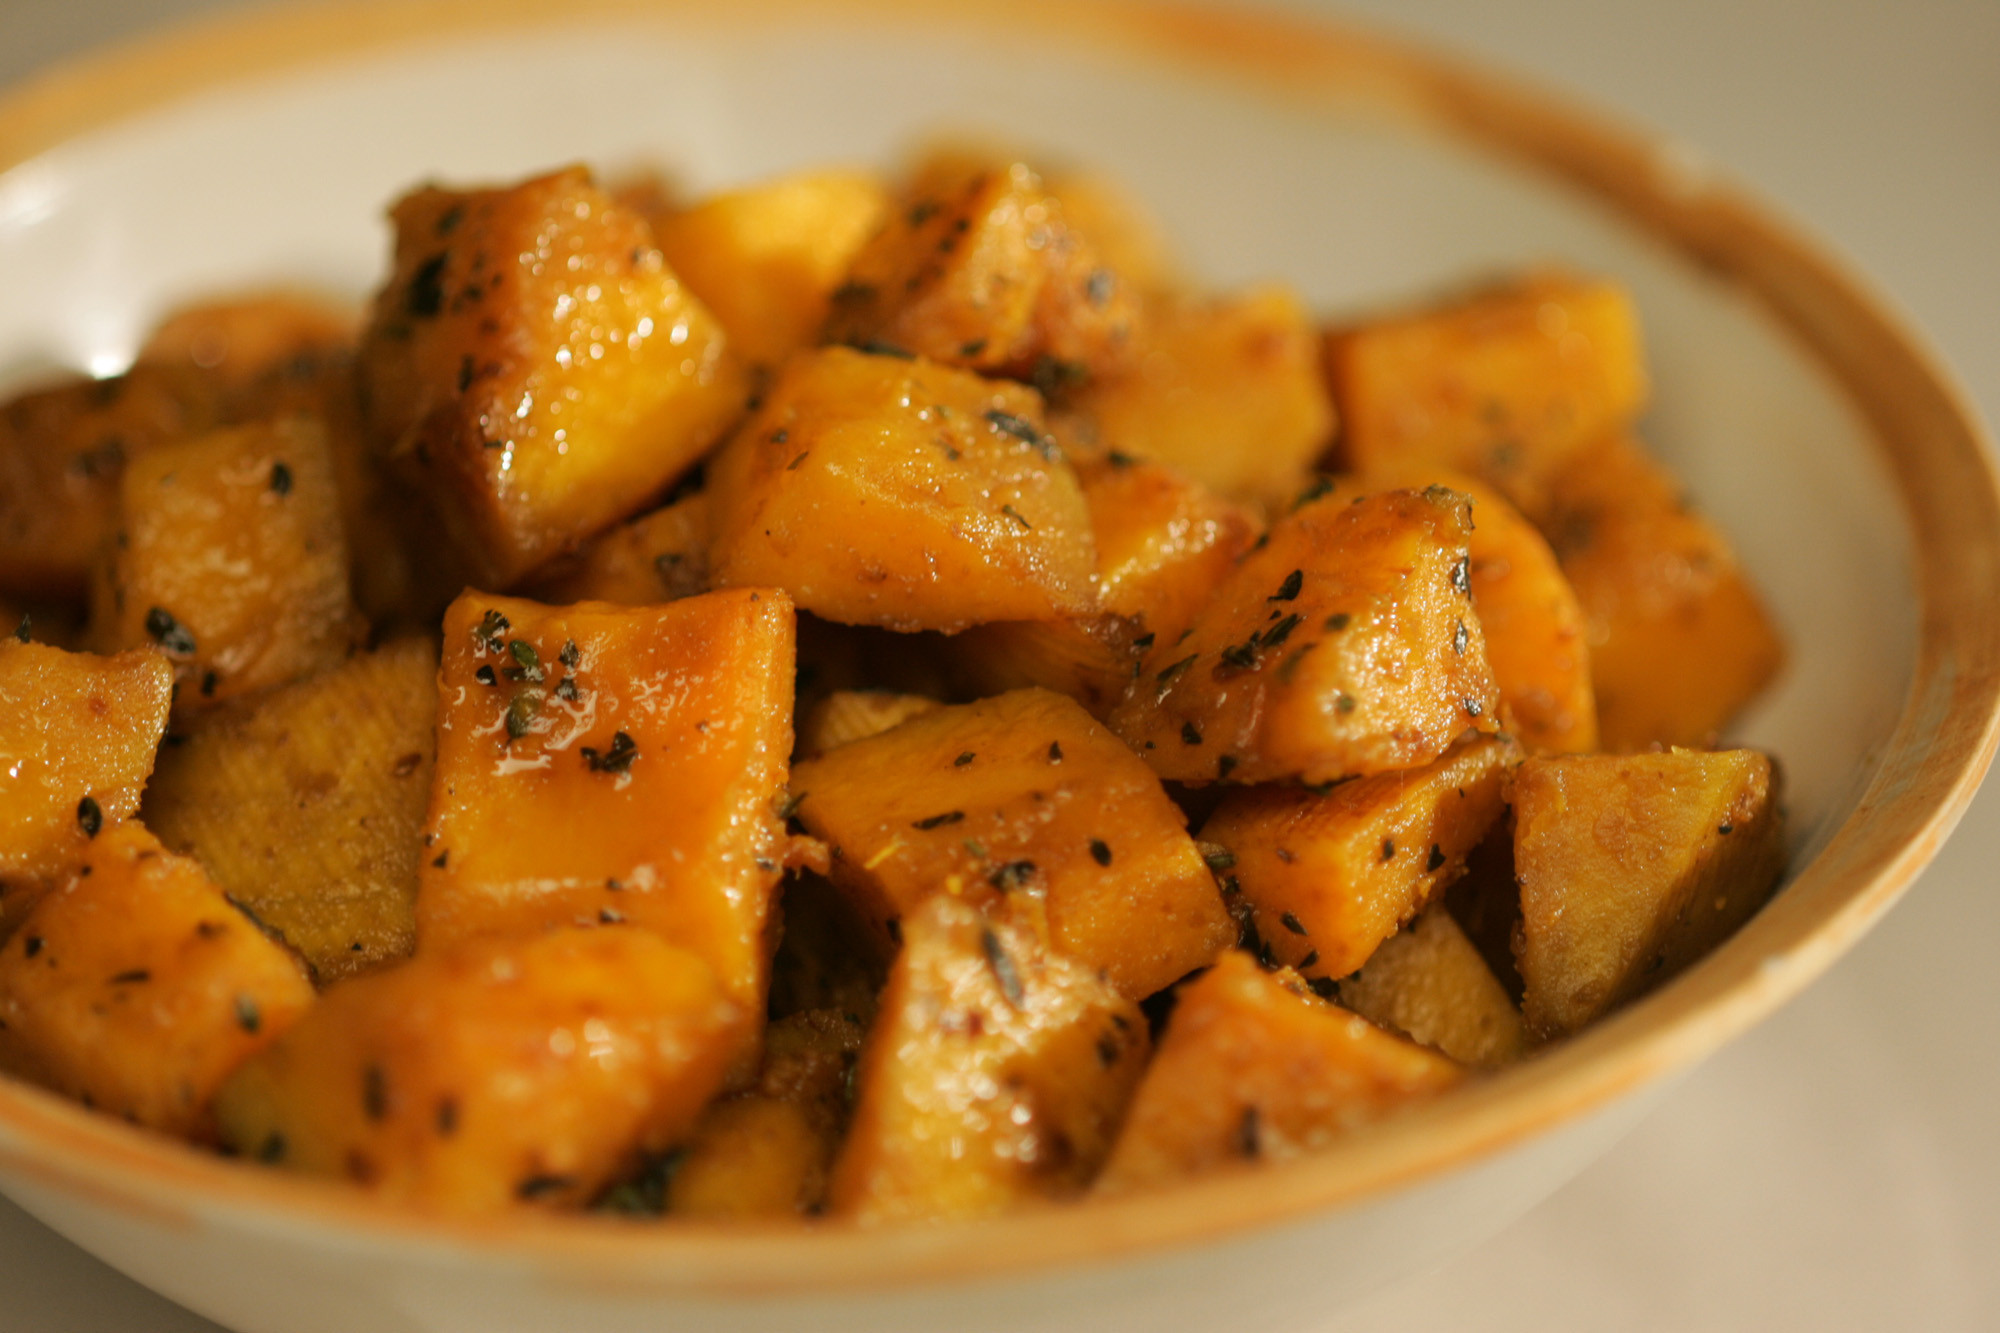 Photos: 97 great Thanksgiving recipes - Peppery roasted squash